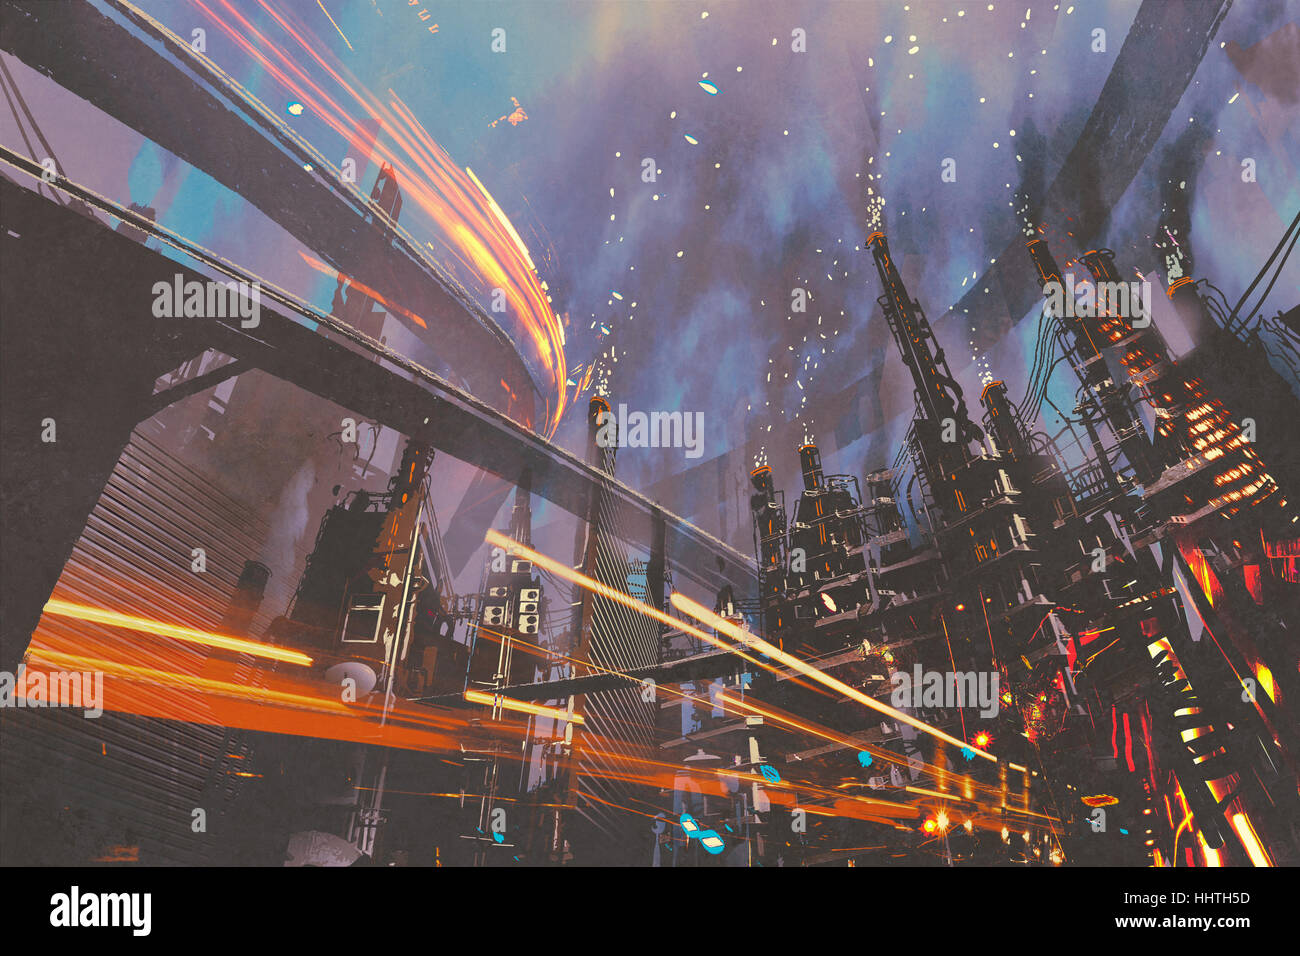 sci-fi scenery of futuristic city with industrial buildings,illustration painting - Stock Image